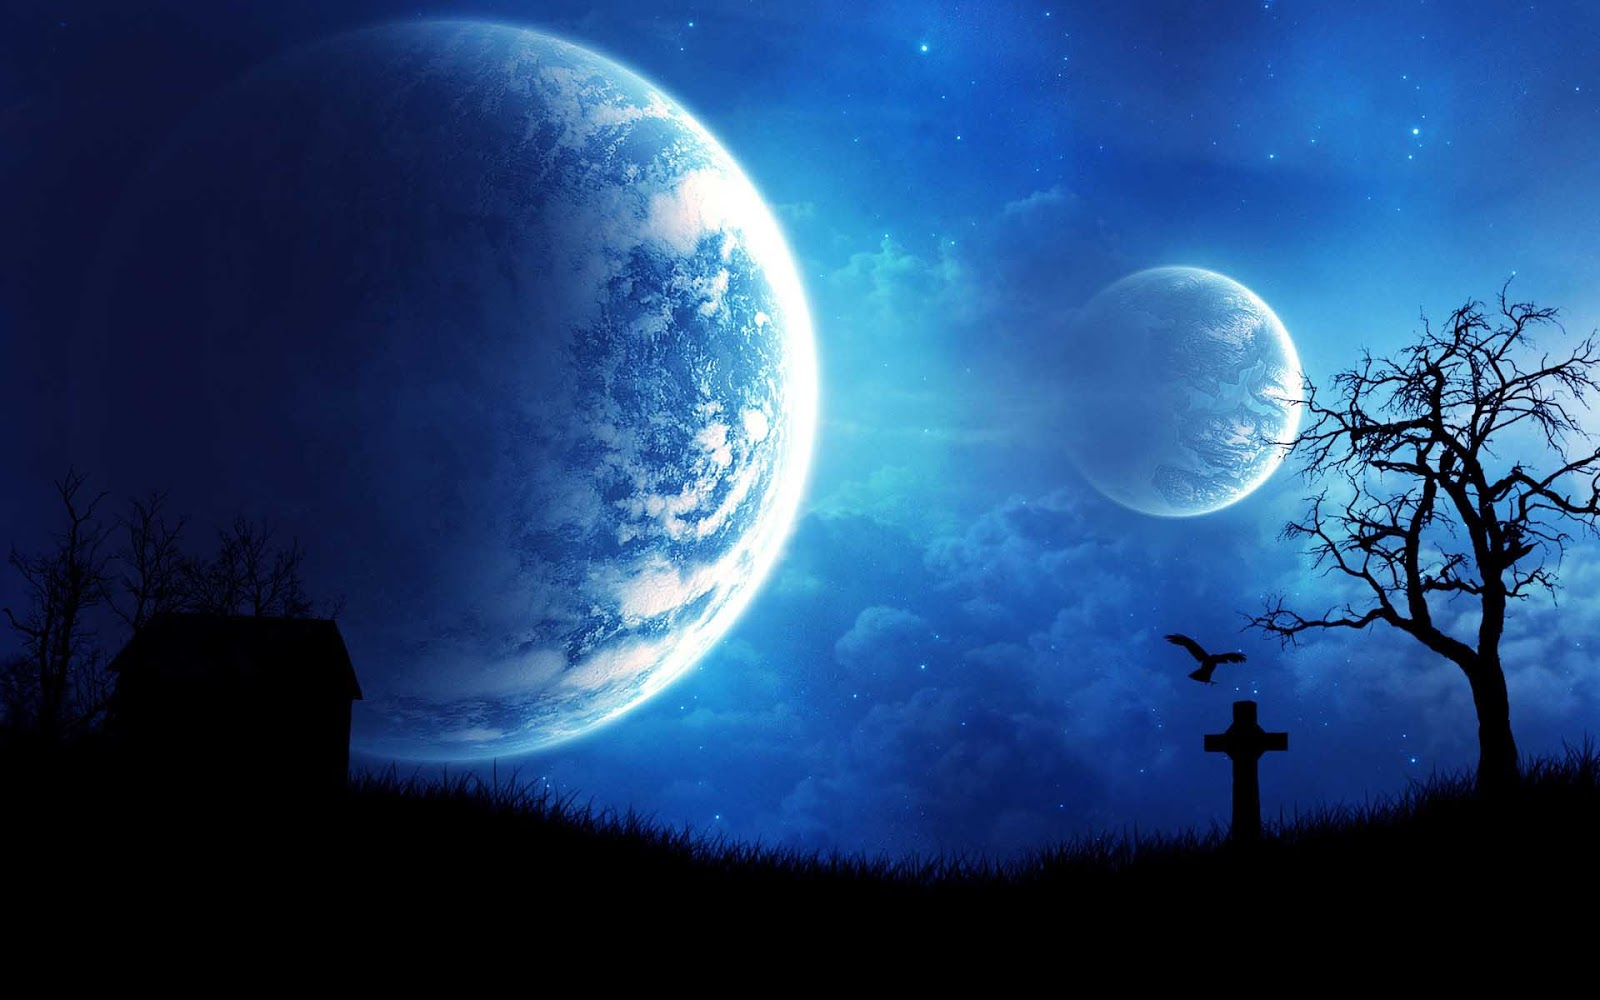 HQ Wallpapers: Earth Fantasy HD Wallpapers